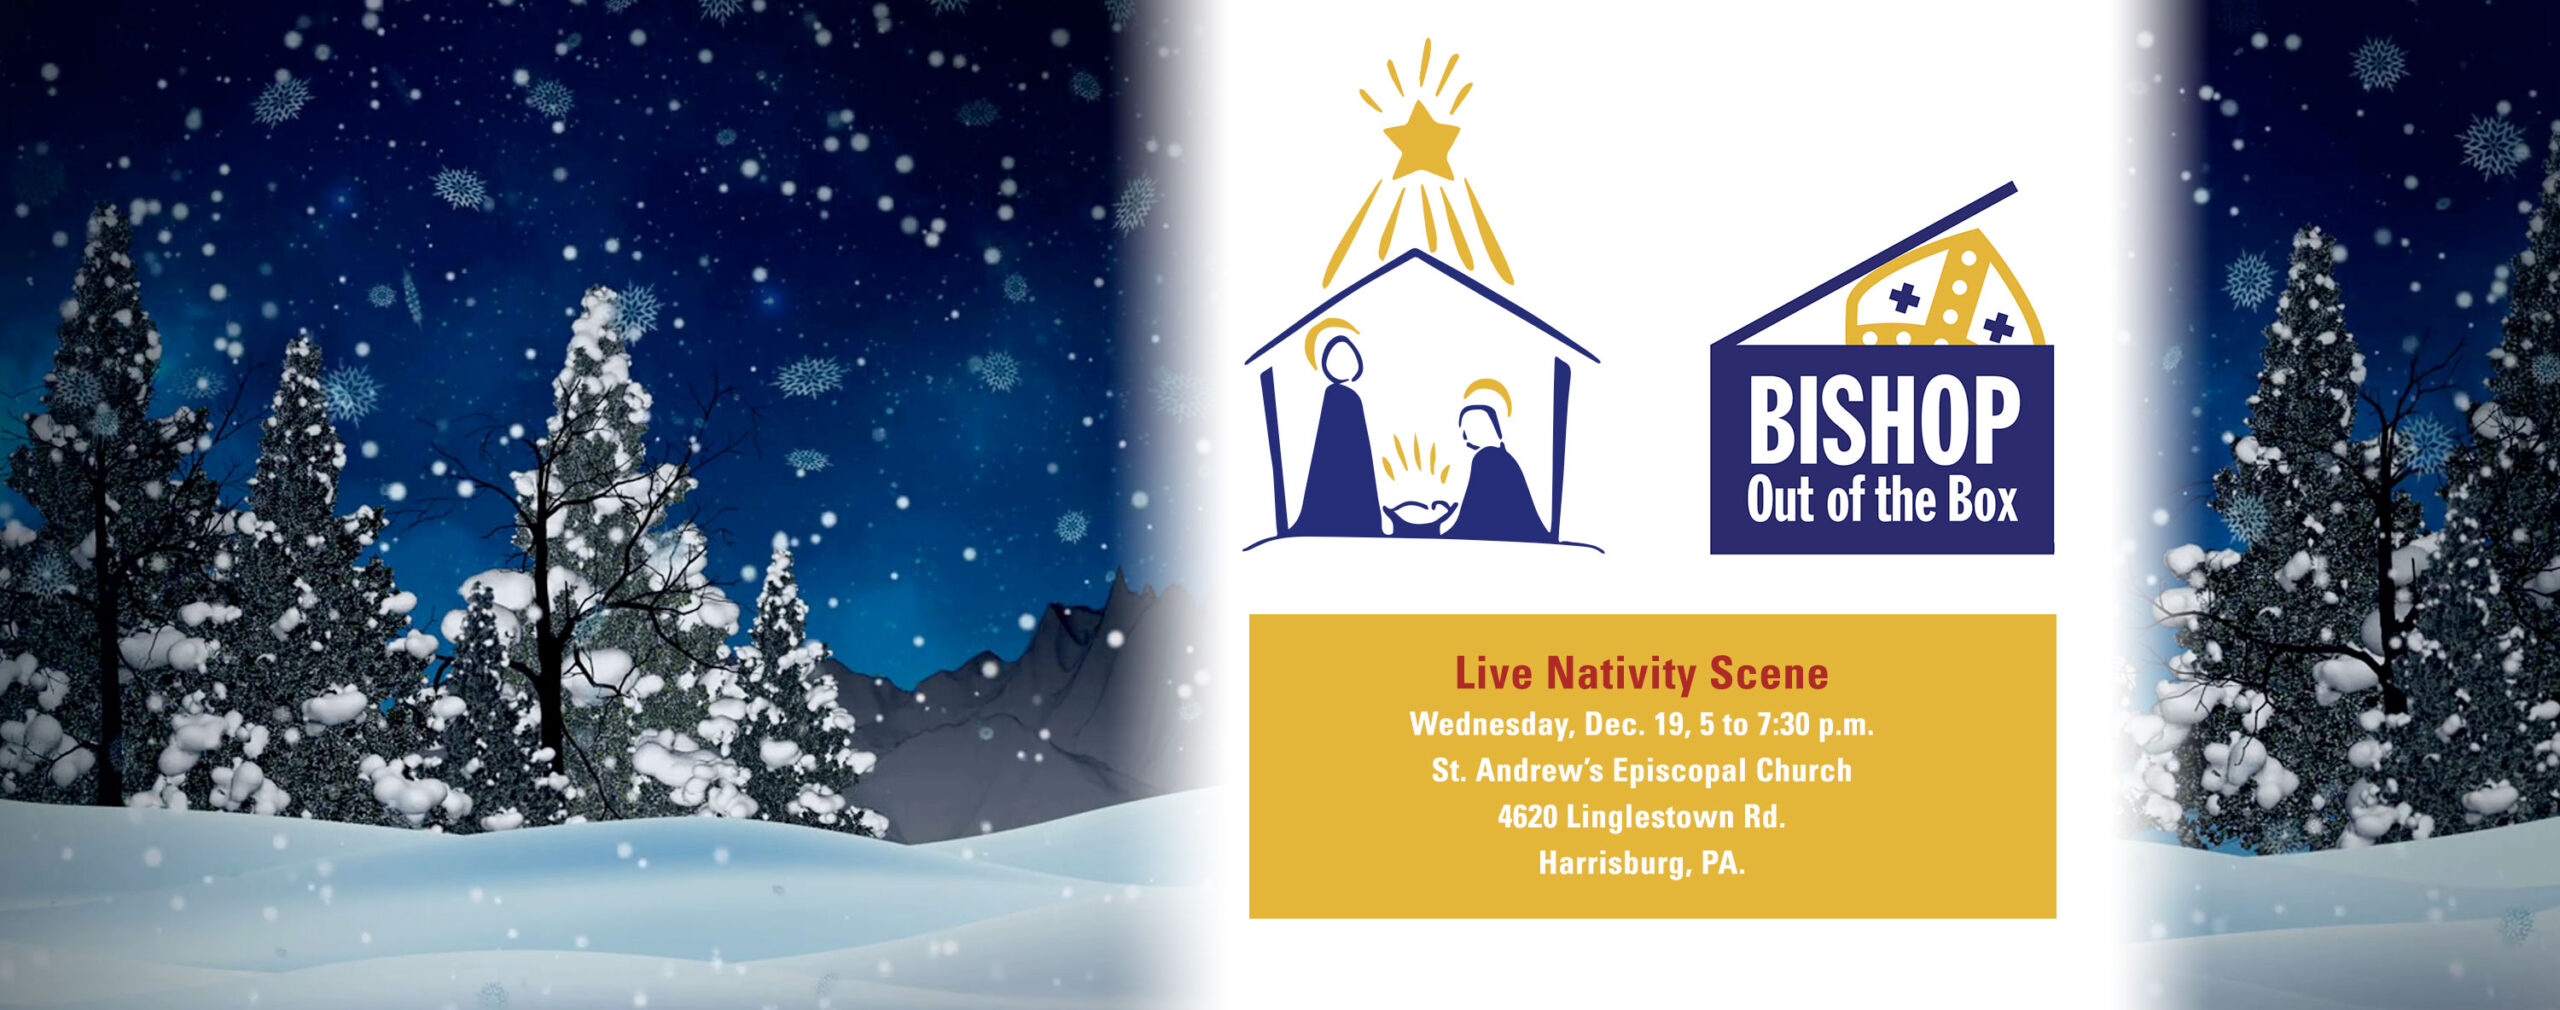 Live Nativity Scene - Bishop Out of the Box